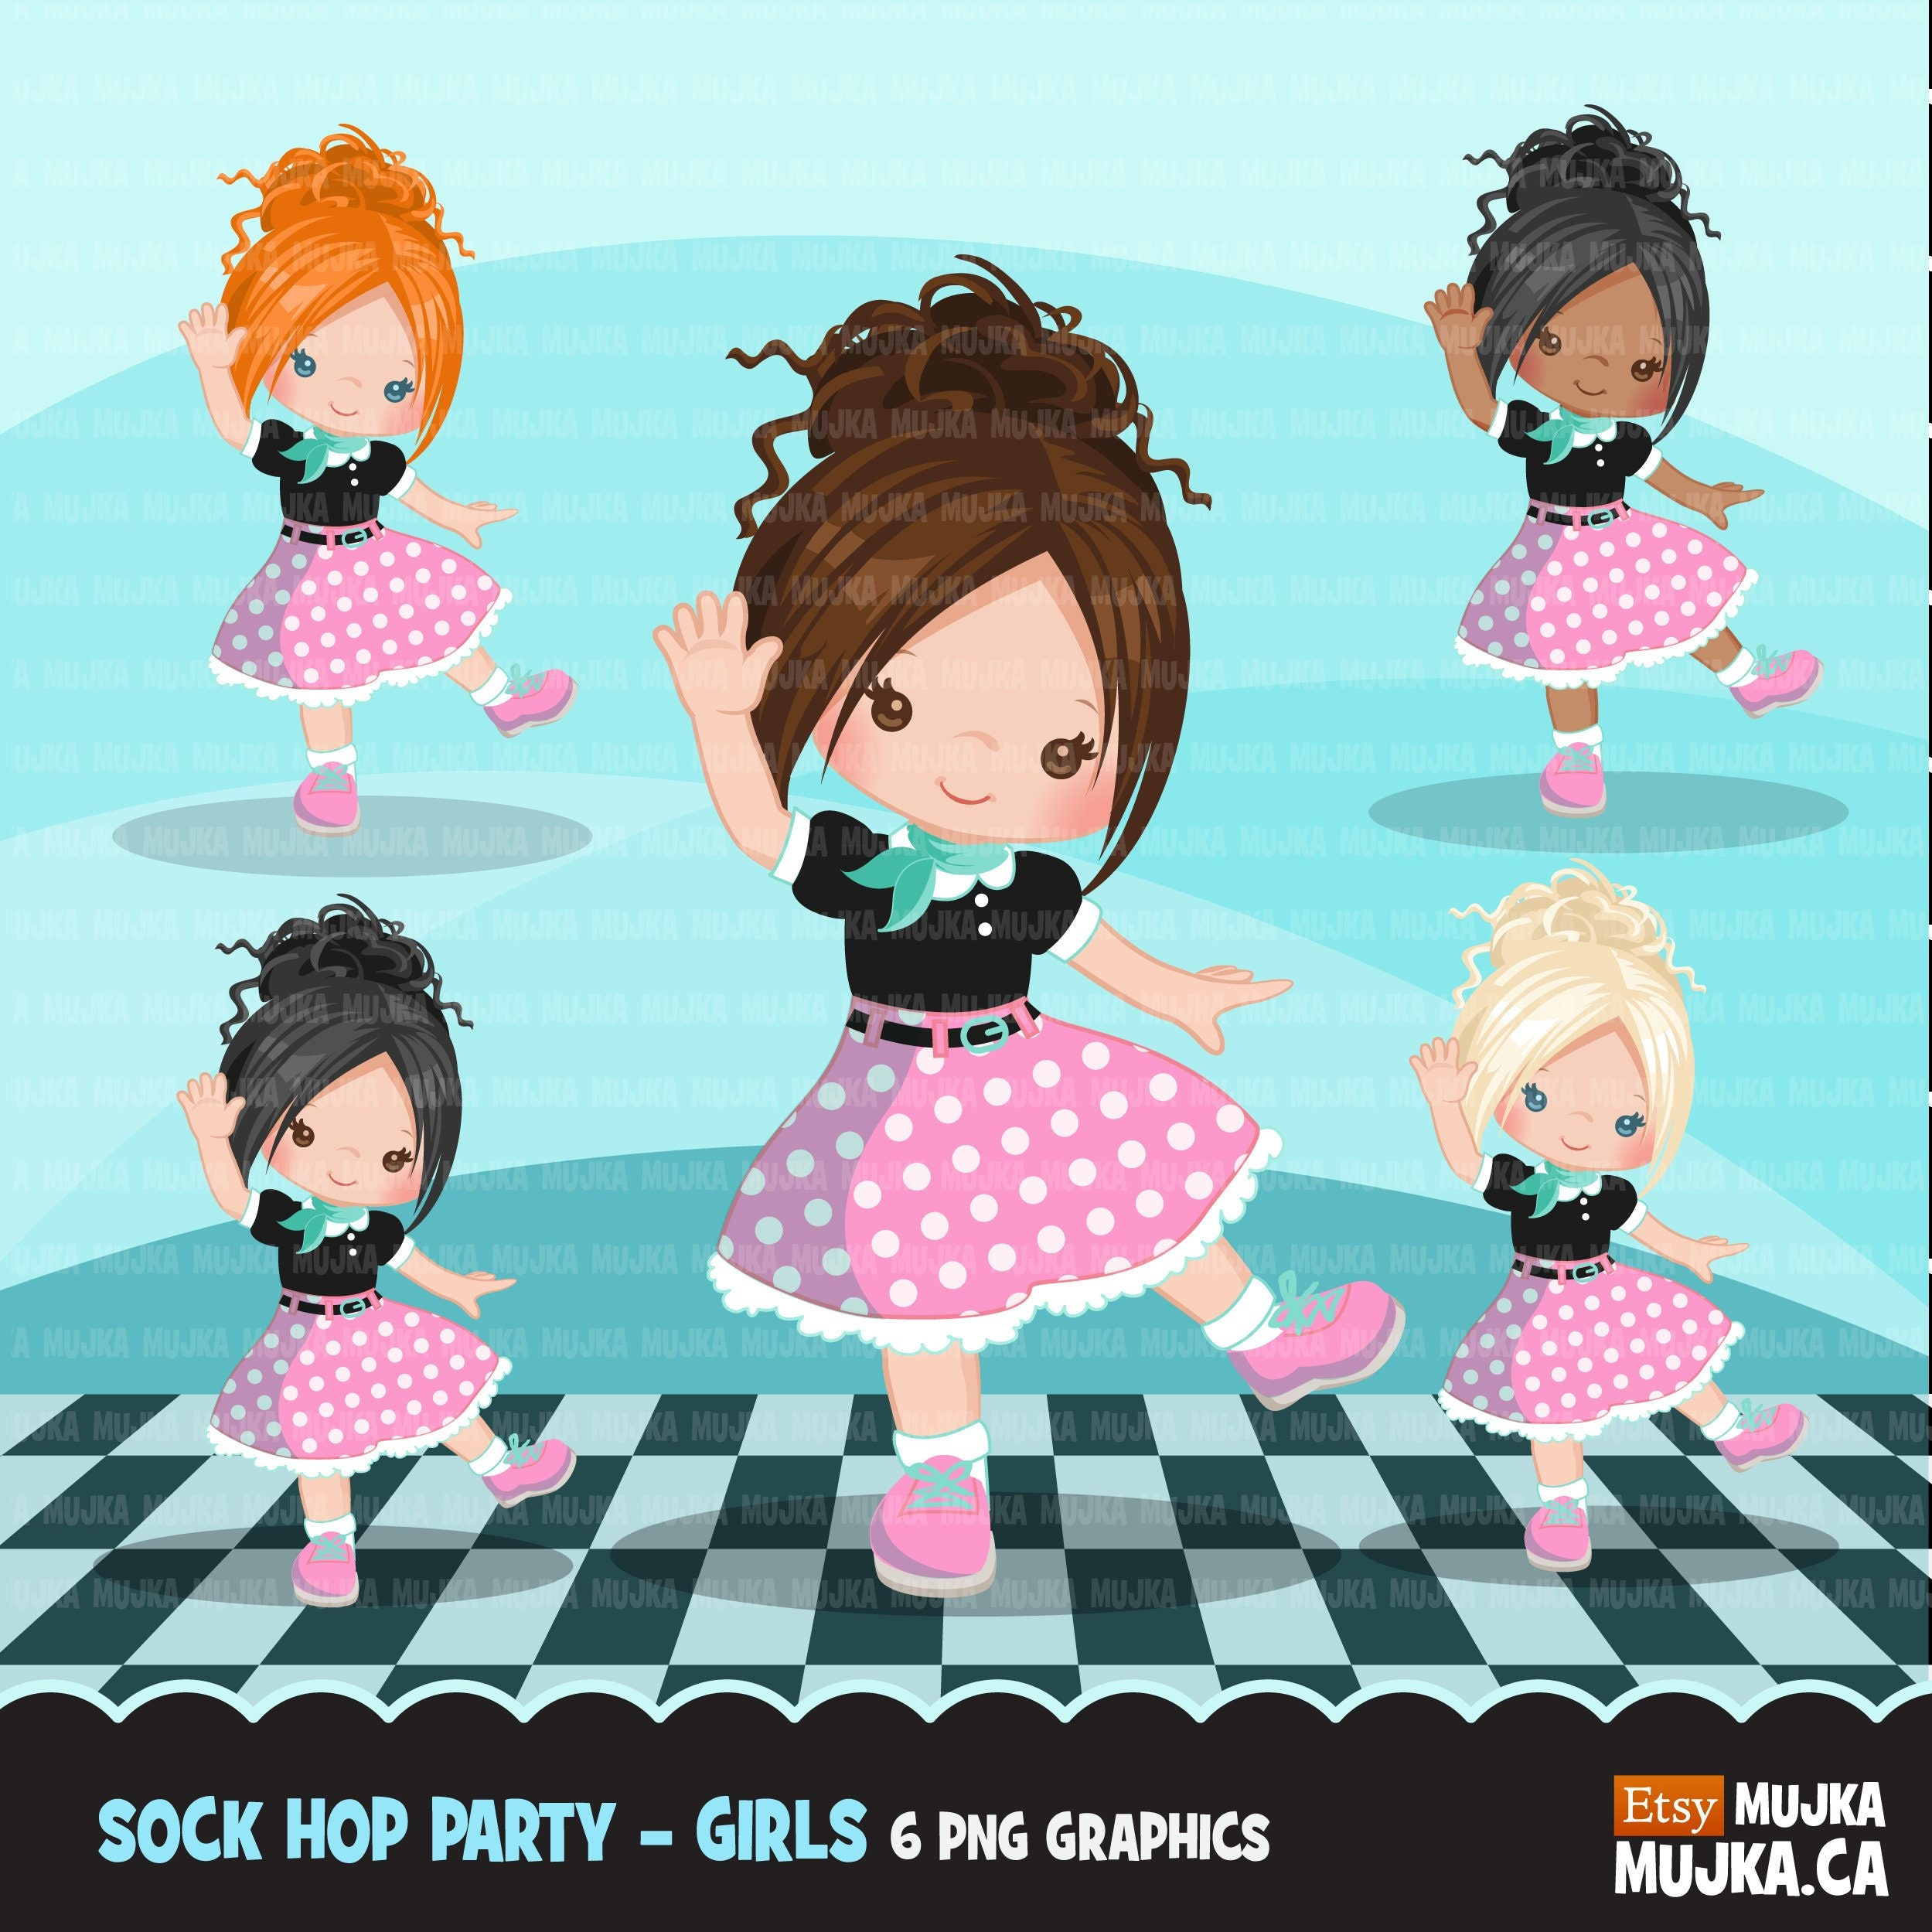 Sock Hop Party Clipart. 50's retro characters dancing | Etsy